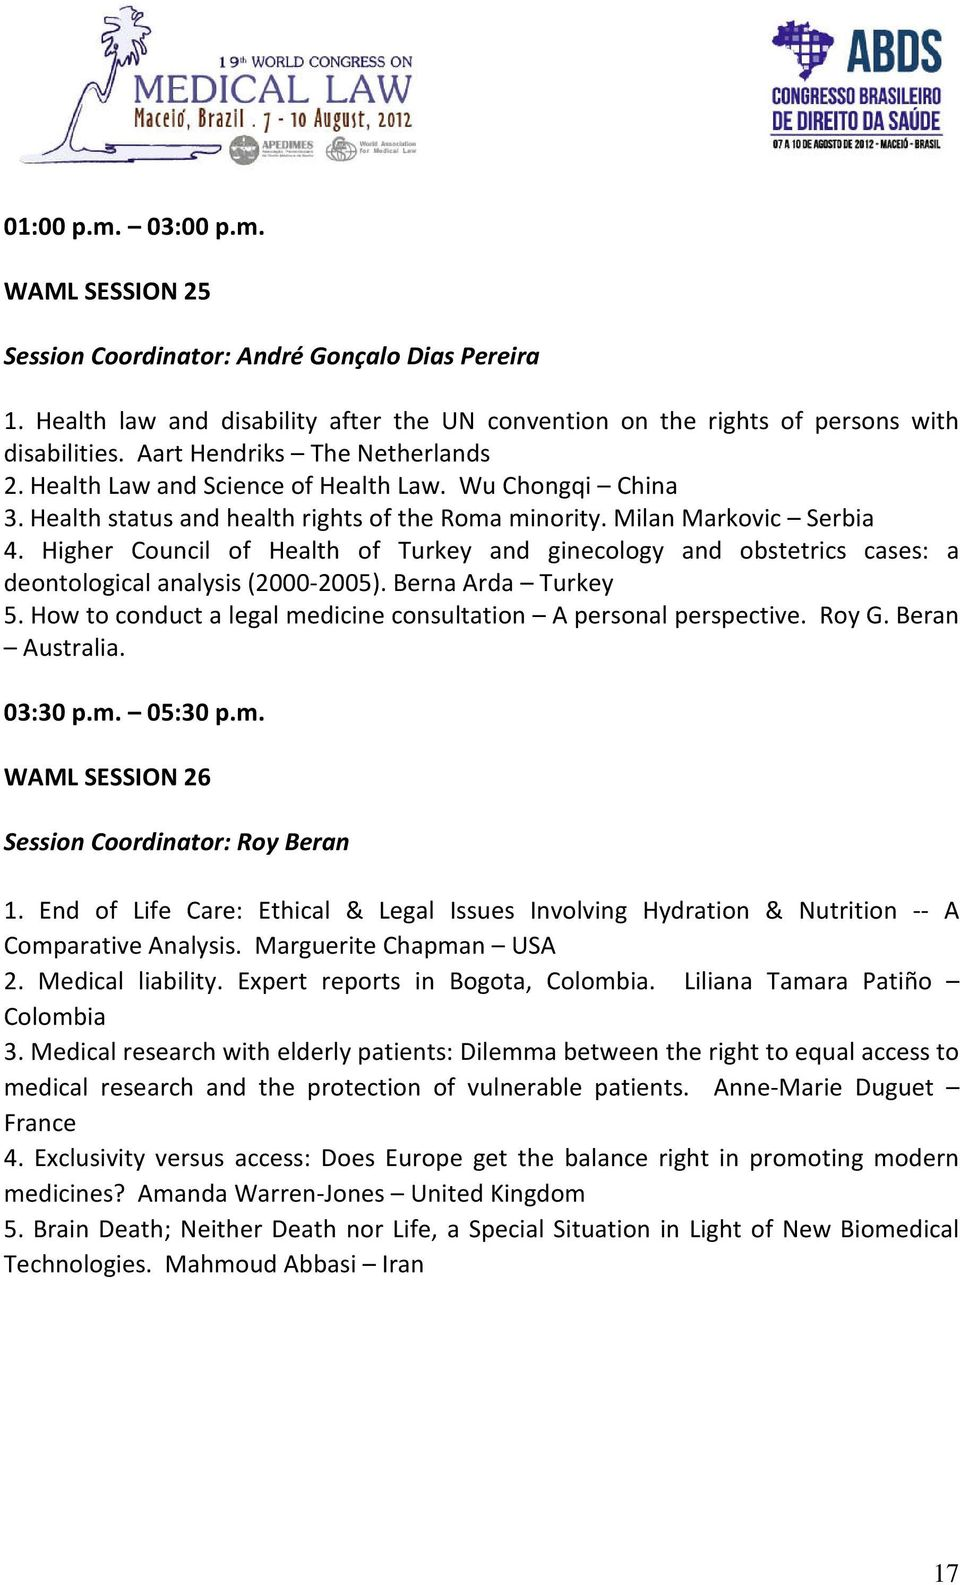 Higher Council of Health of Turkey and ginecology and obstetrics cases: a deontological analysis (2000-2005). Berna Arda Turkey 5. How to conduct a legal medicine consultation A personal perspective.